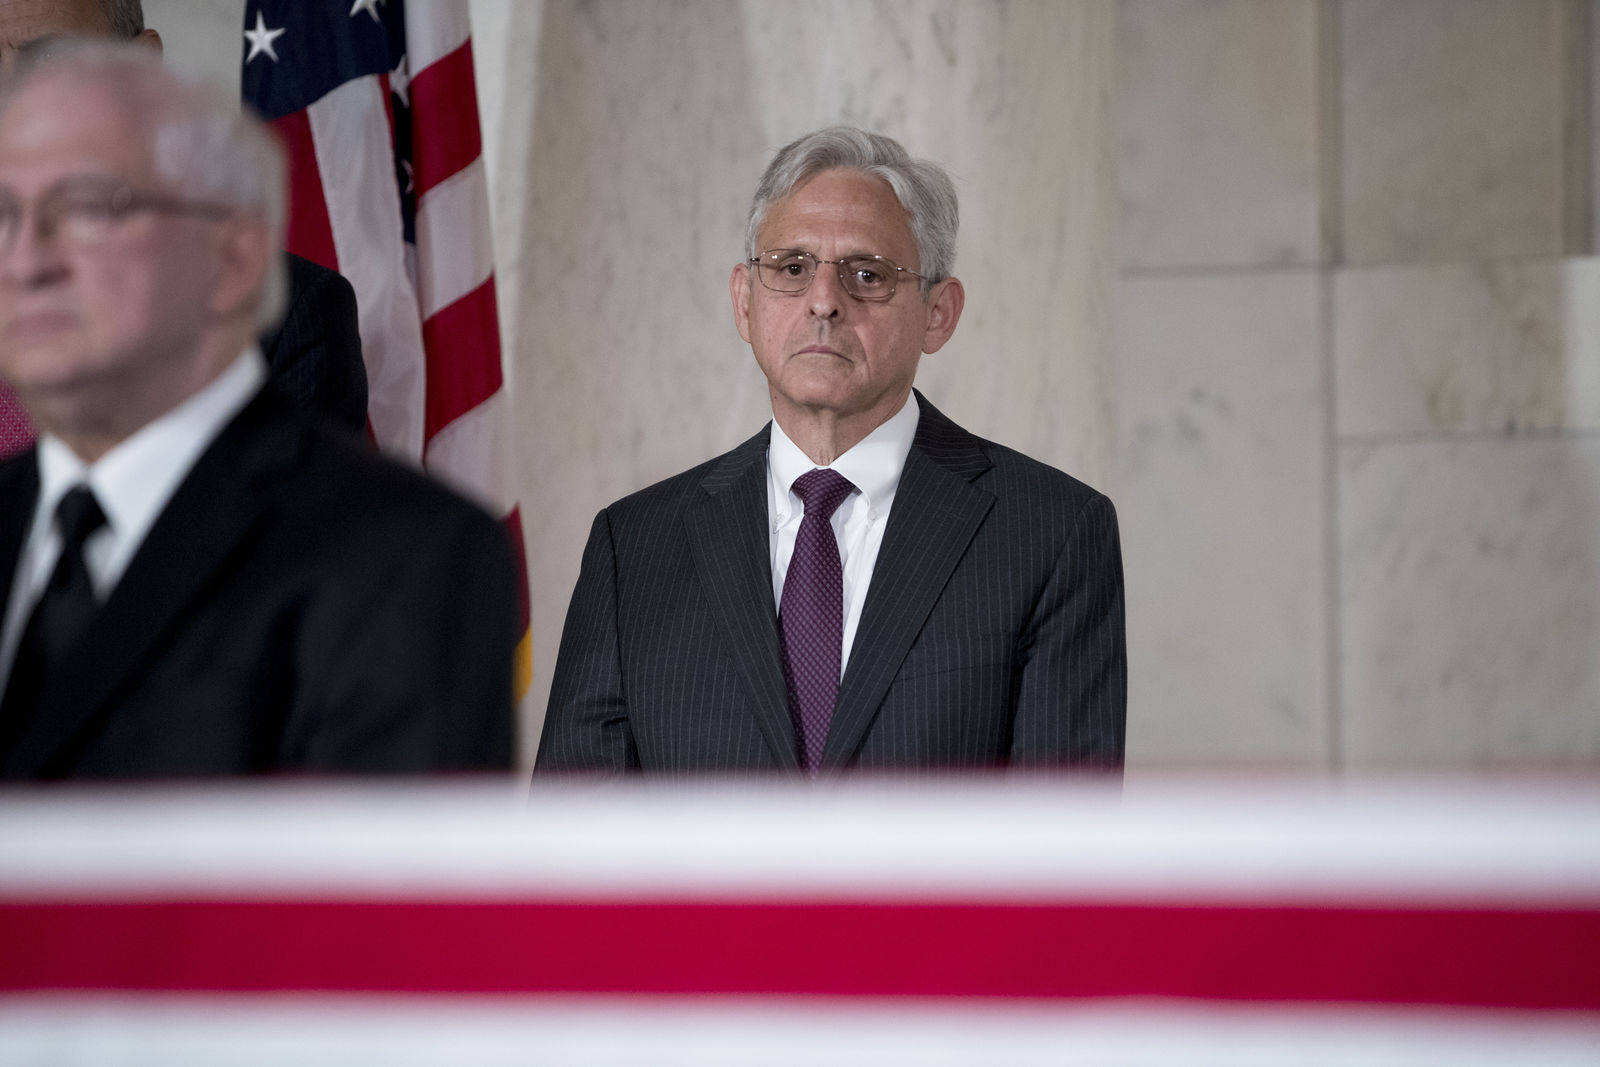 Former President Barack Obama's Supreme Court nominee Merrick Garland pays his respects for the late Supreme Court Justice John Paul Stevens as he lies in repose in the Great Hall of the Supreme Court in Washington, Monday, July 22, 2019. (AP Photo/Andrew Harnik)